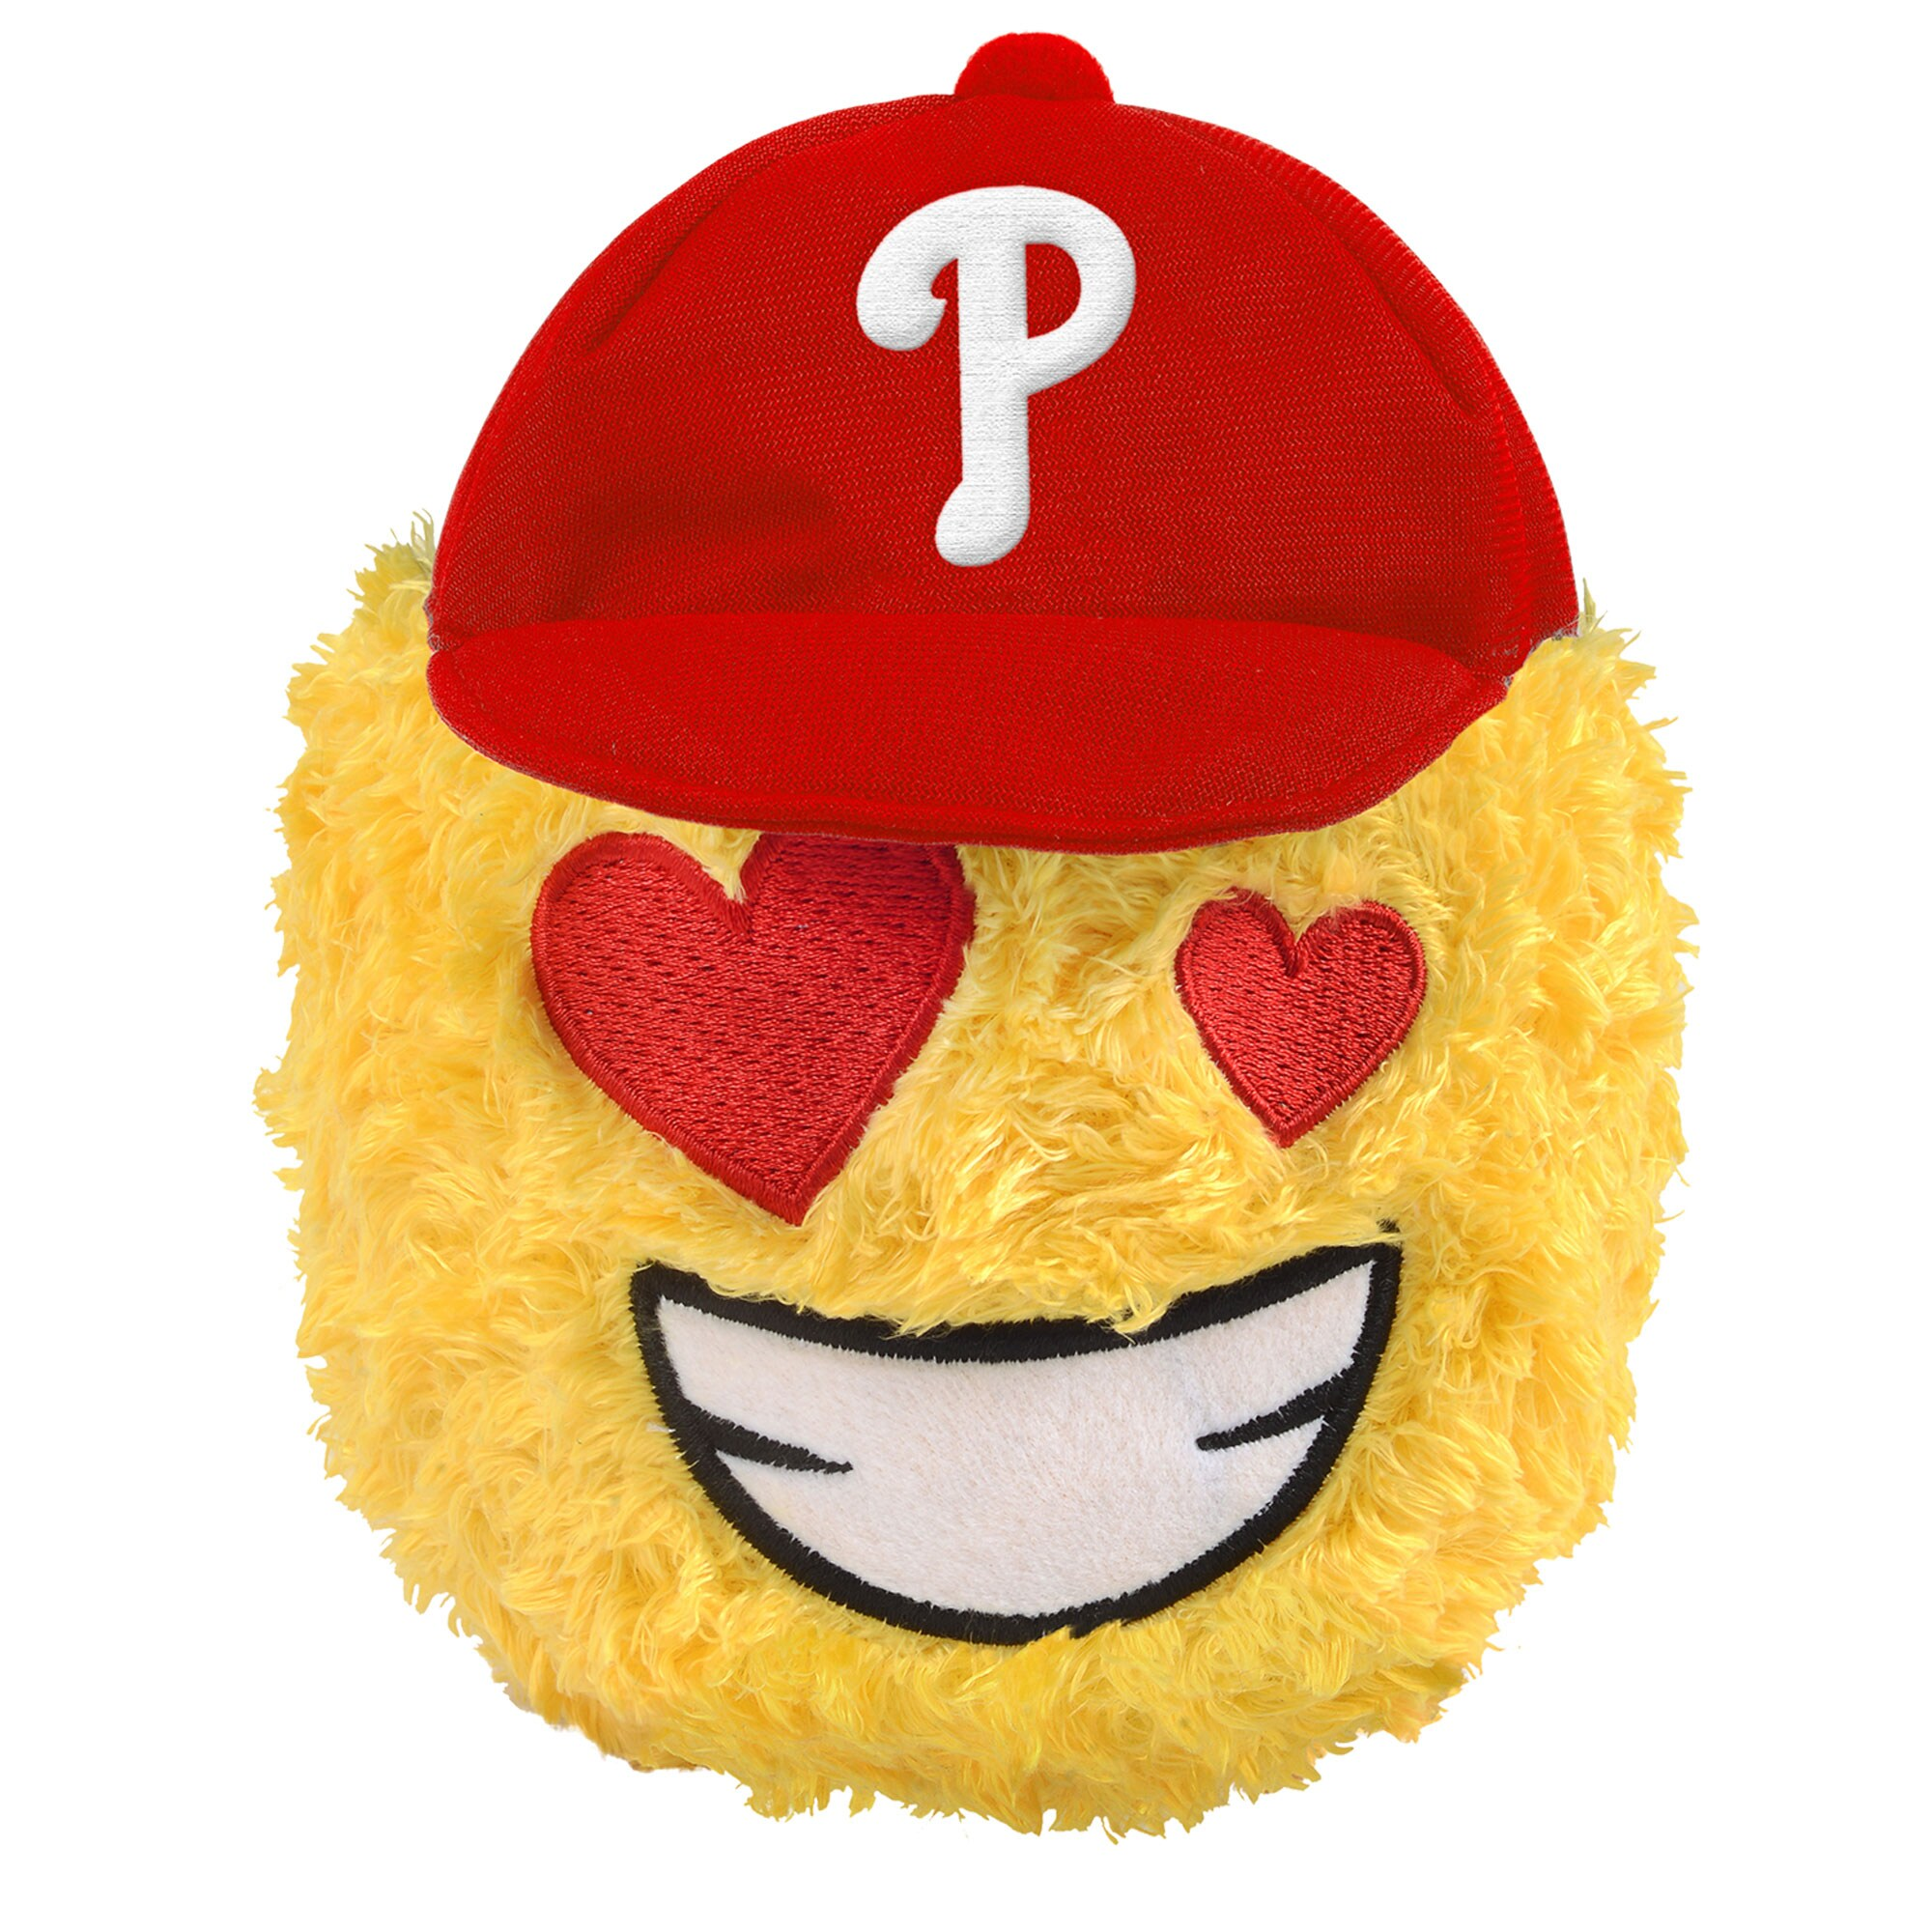 "Philadelphia Phillies 5"" Heart Eyes Teamoji Plush Toy"